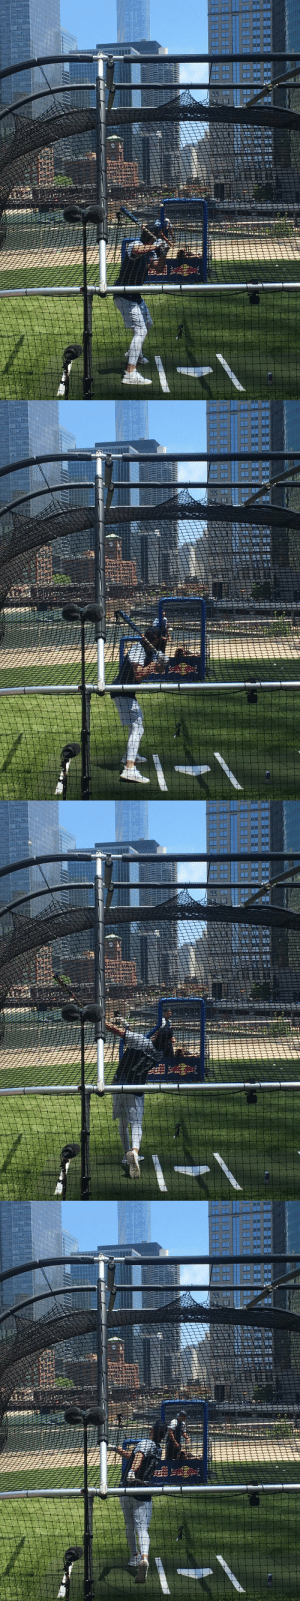 Run, For, and Kris Bryant: RT @BaseballBros: Kris Bryant's swing is ready for a playoff run https://t.co/IQjVeqkfCO